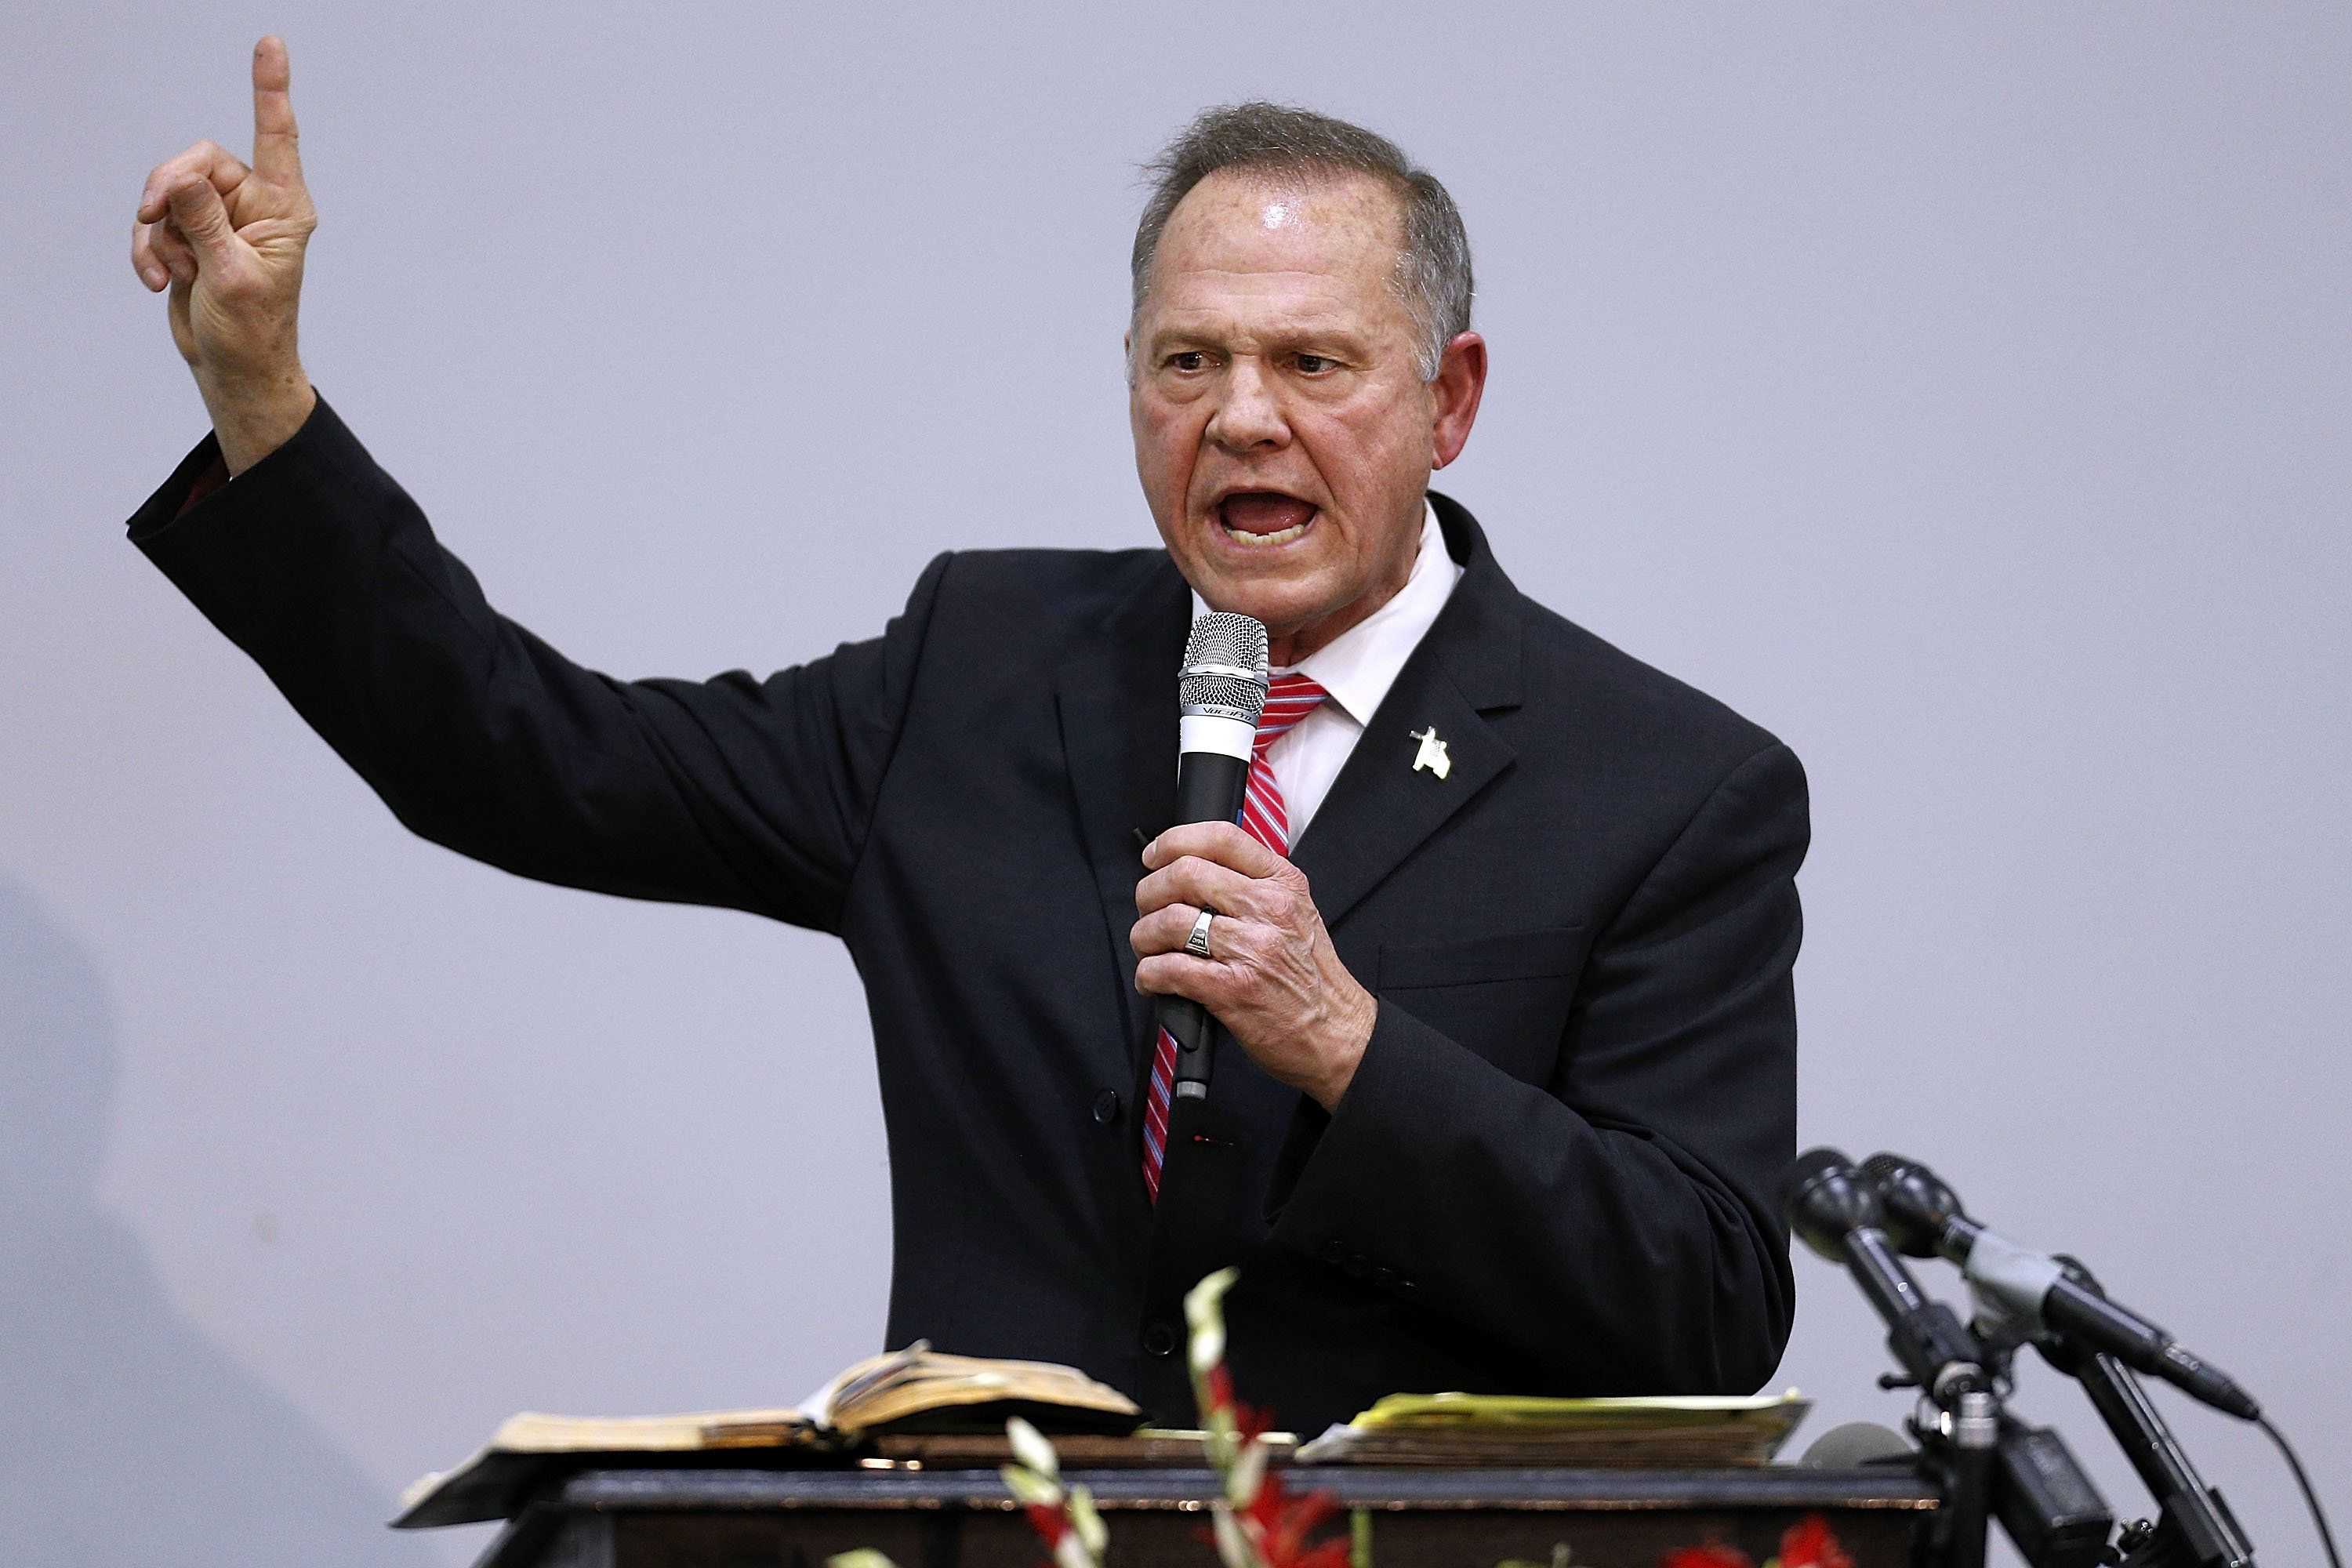 Roy Moore, the Republican candidate for Senate in Alabama, speaks during a campaign event on Tuesday.